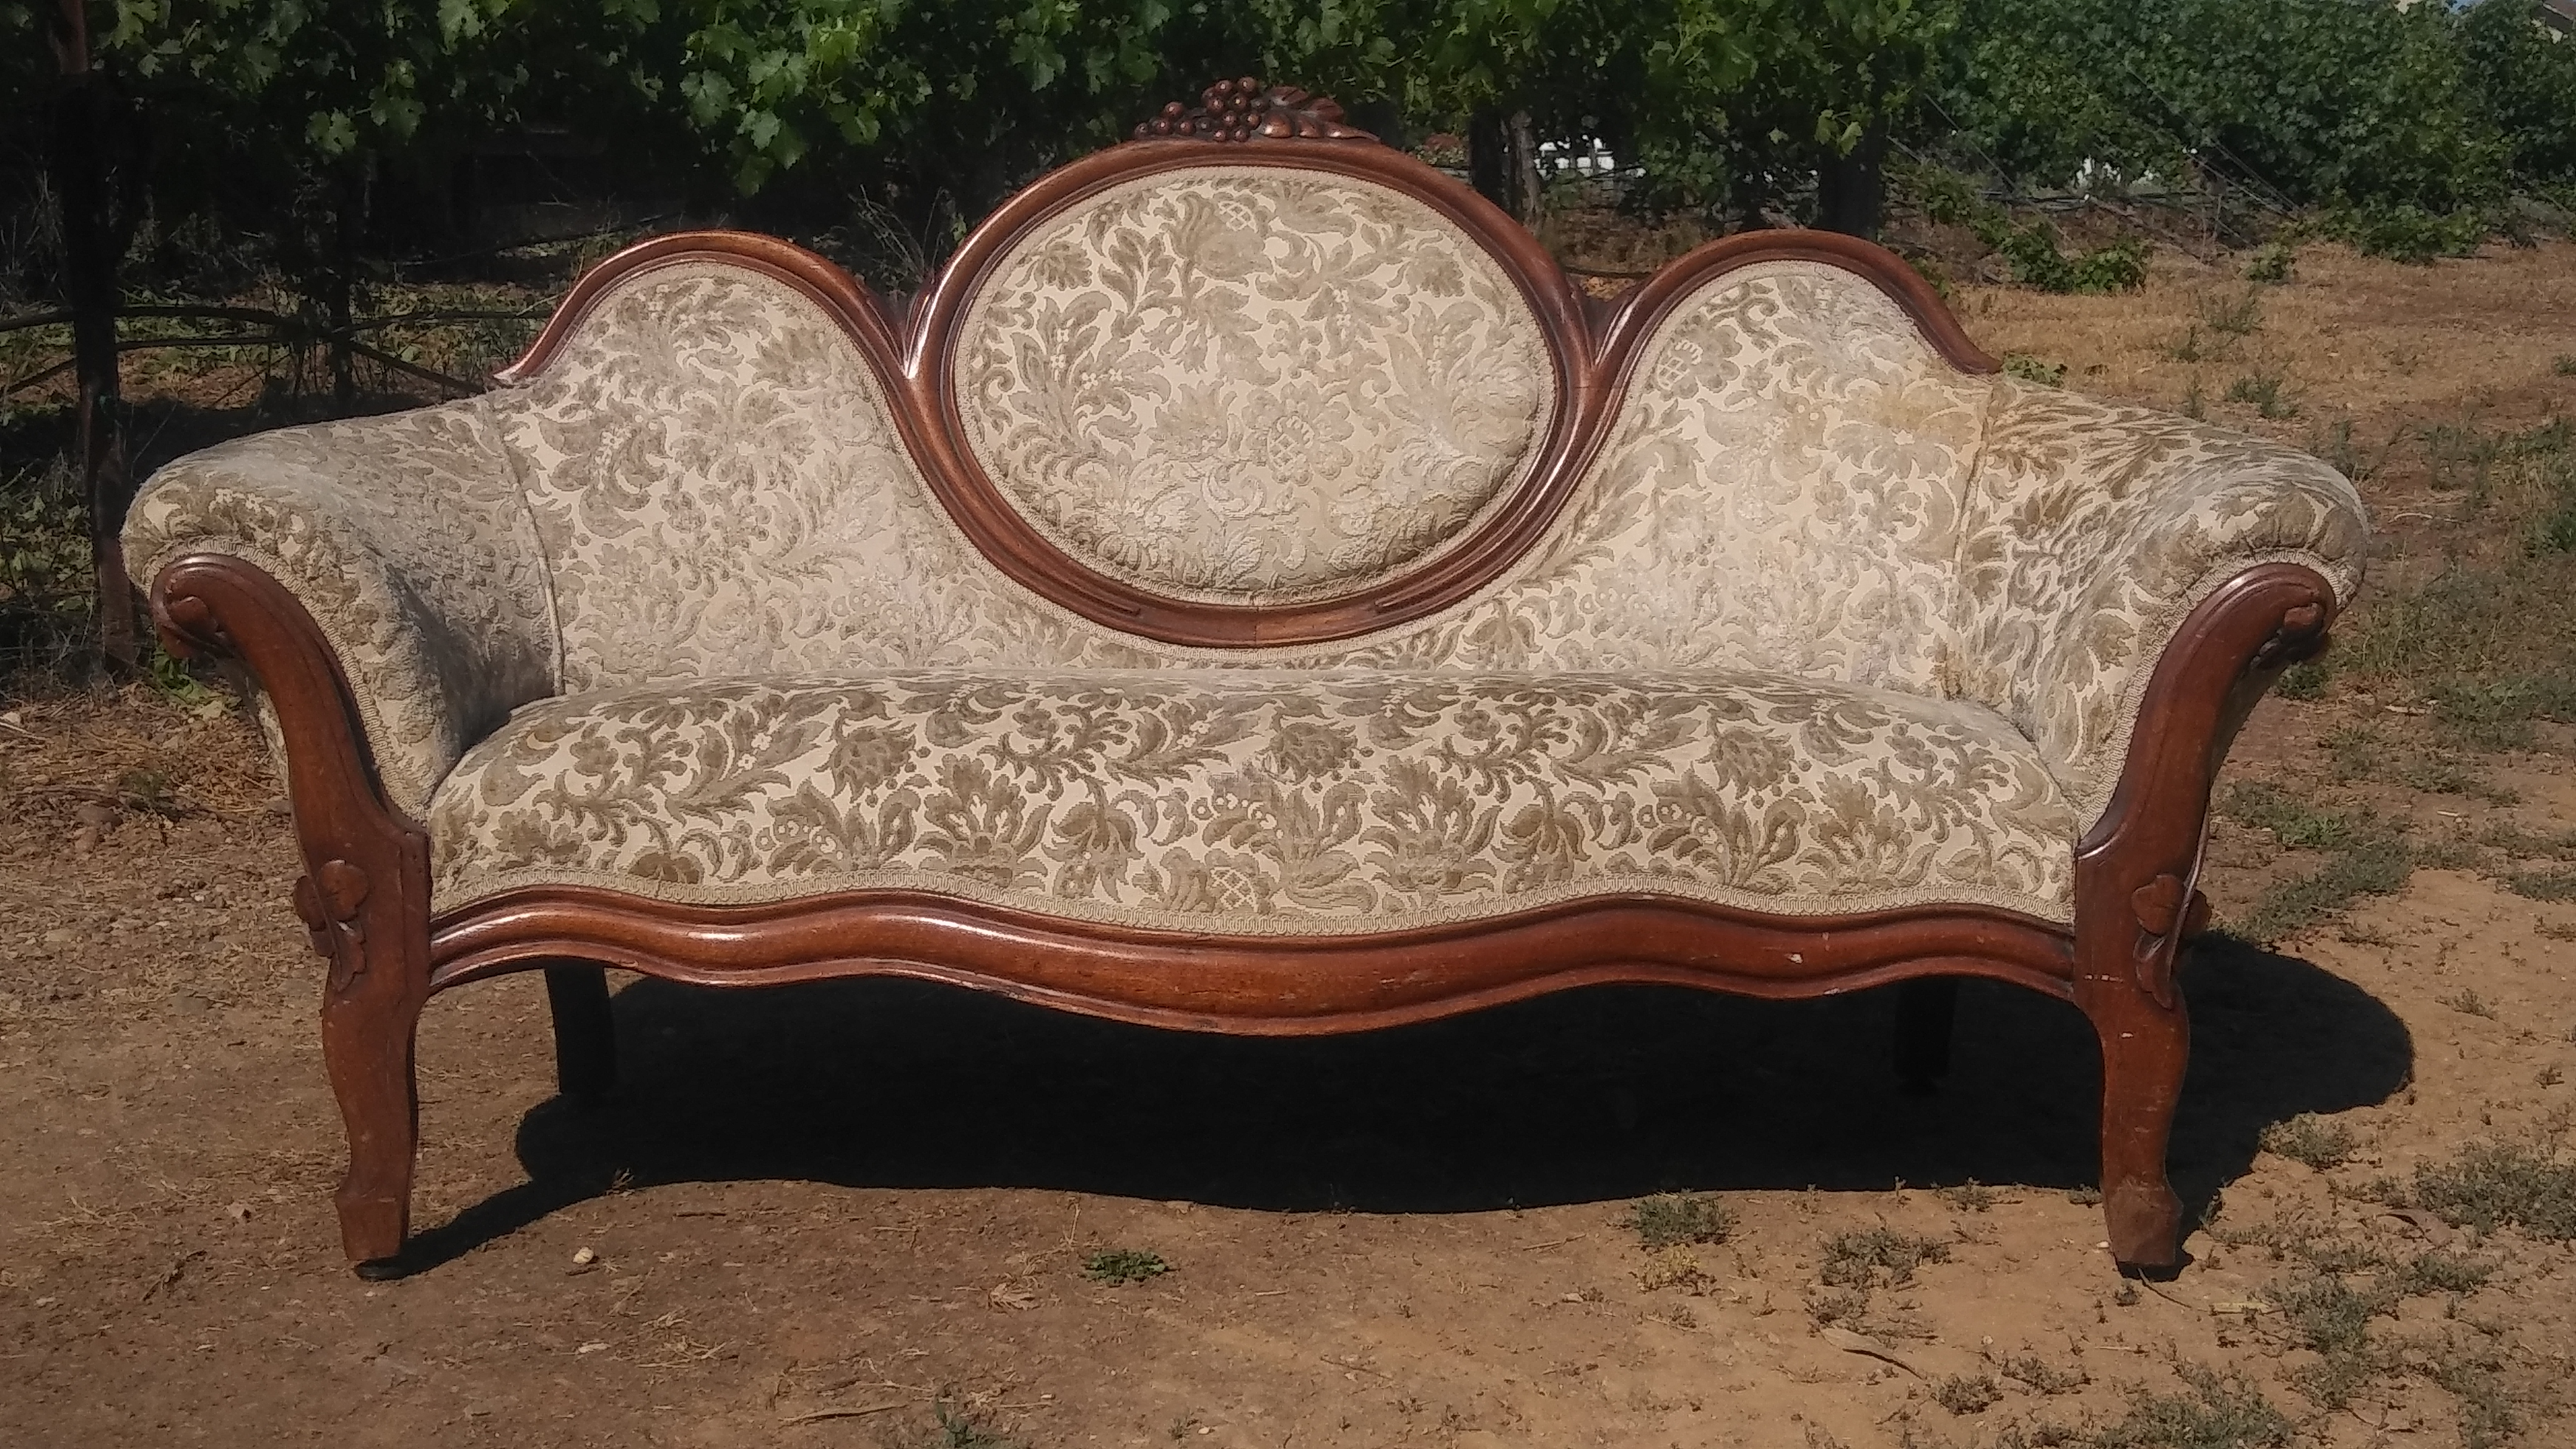 Sweetheart Sofa wedding rentals by Brave Horse Winery